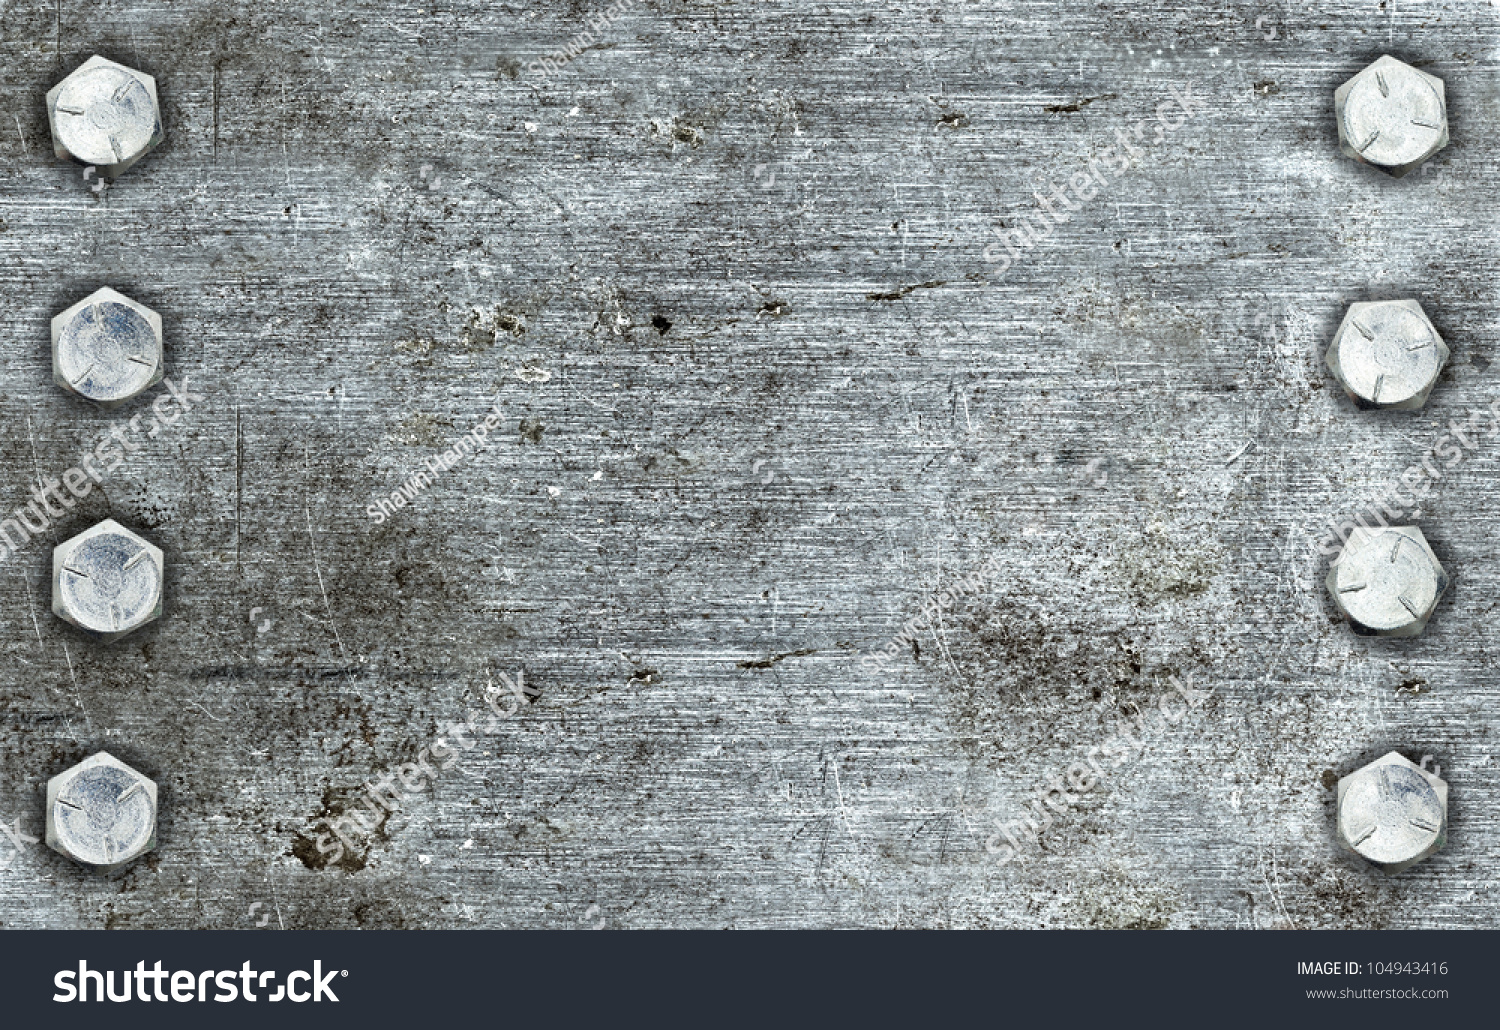 brushed metal background with two rows of bolts stock